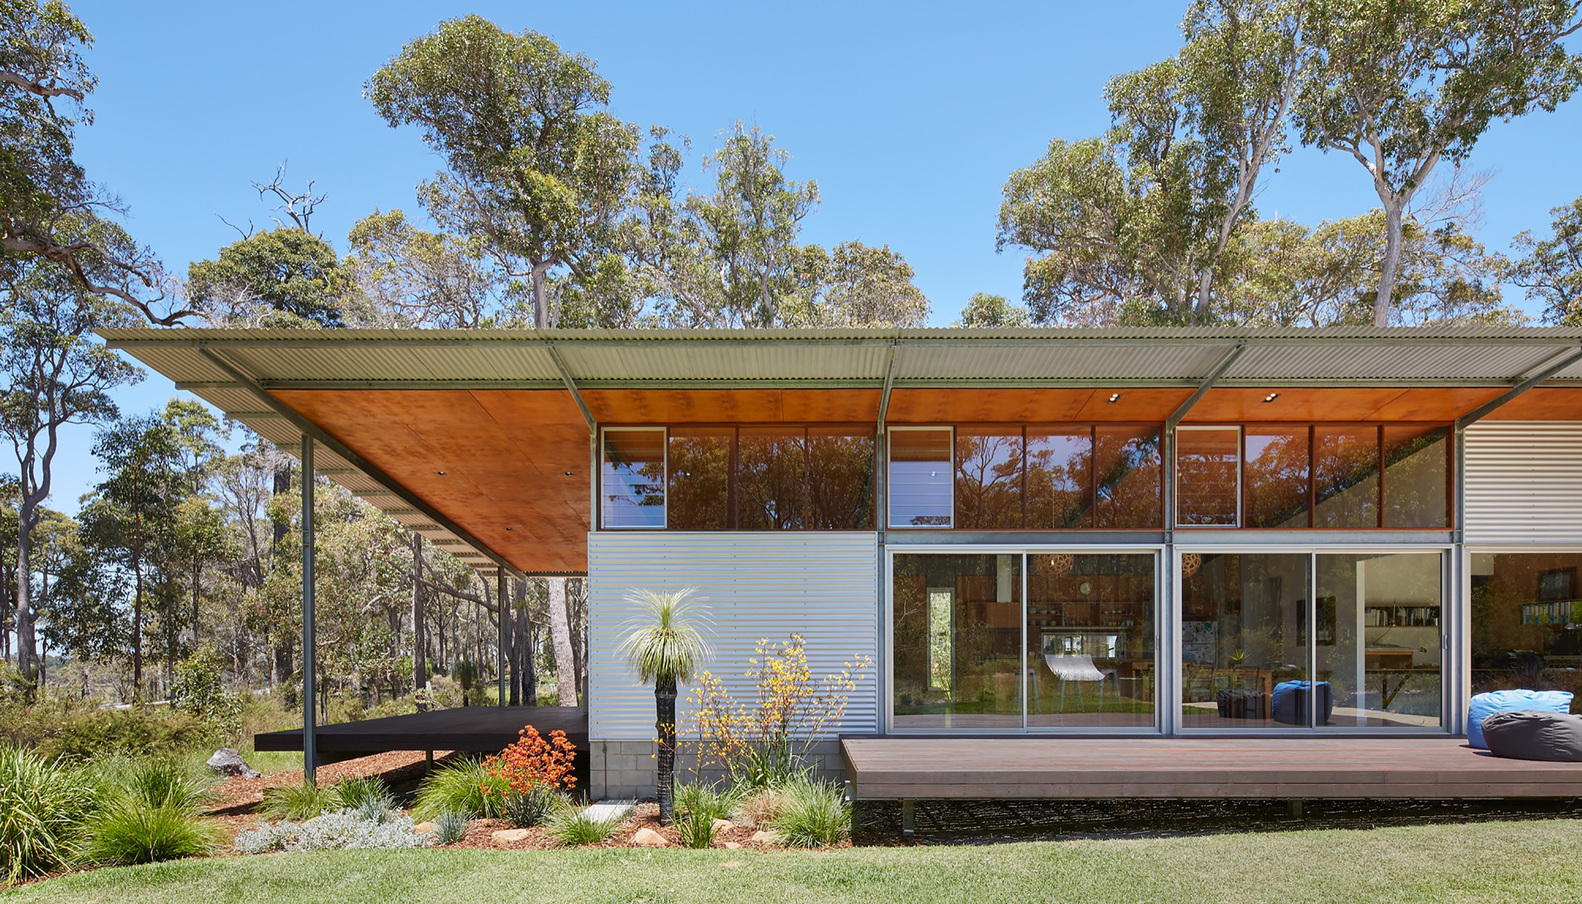 A home inspired by the feelings of camping under a simple for Bush house designs